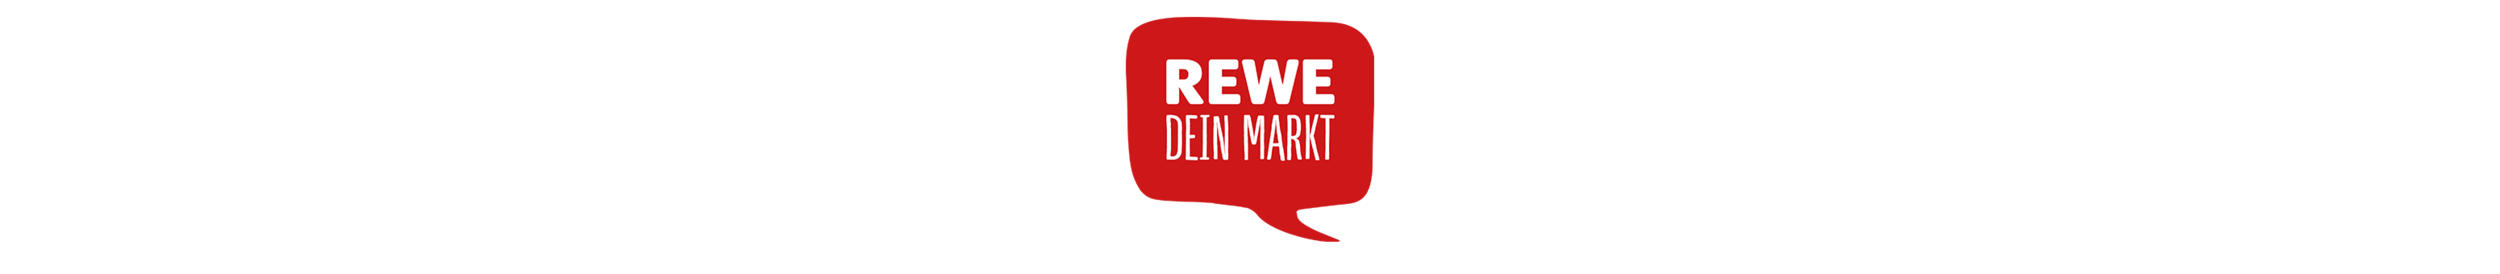 3100x2160px_REWE_Campaigns 01 REWE Logo S.png